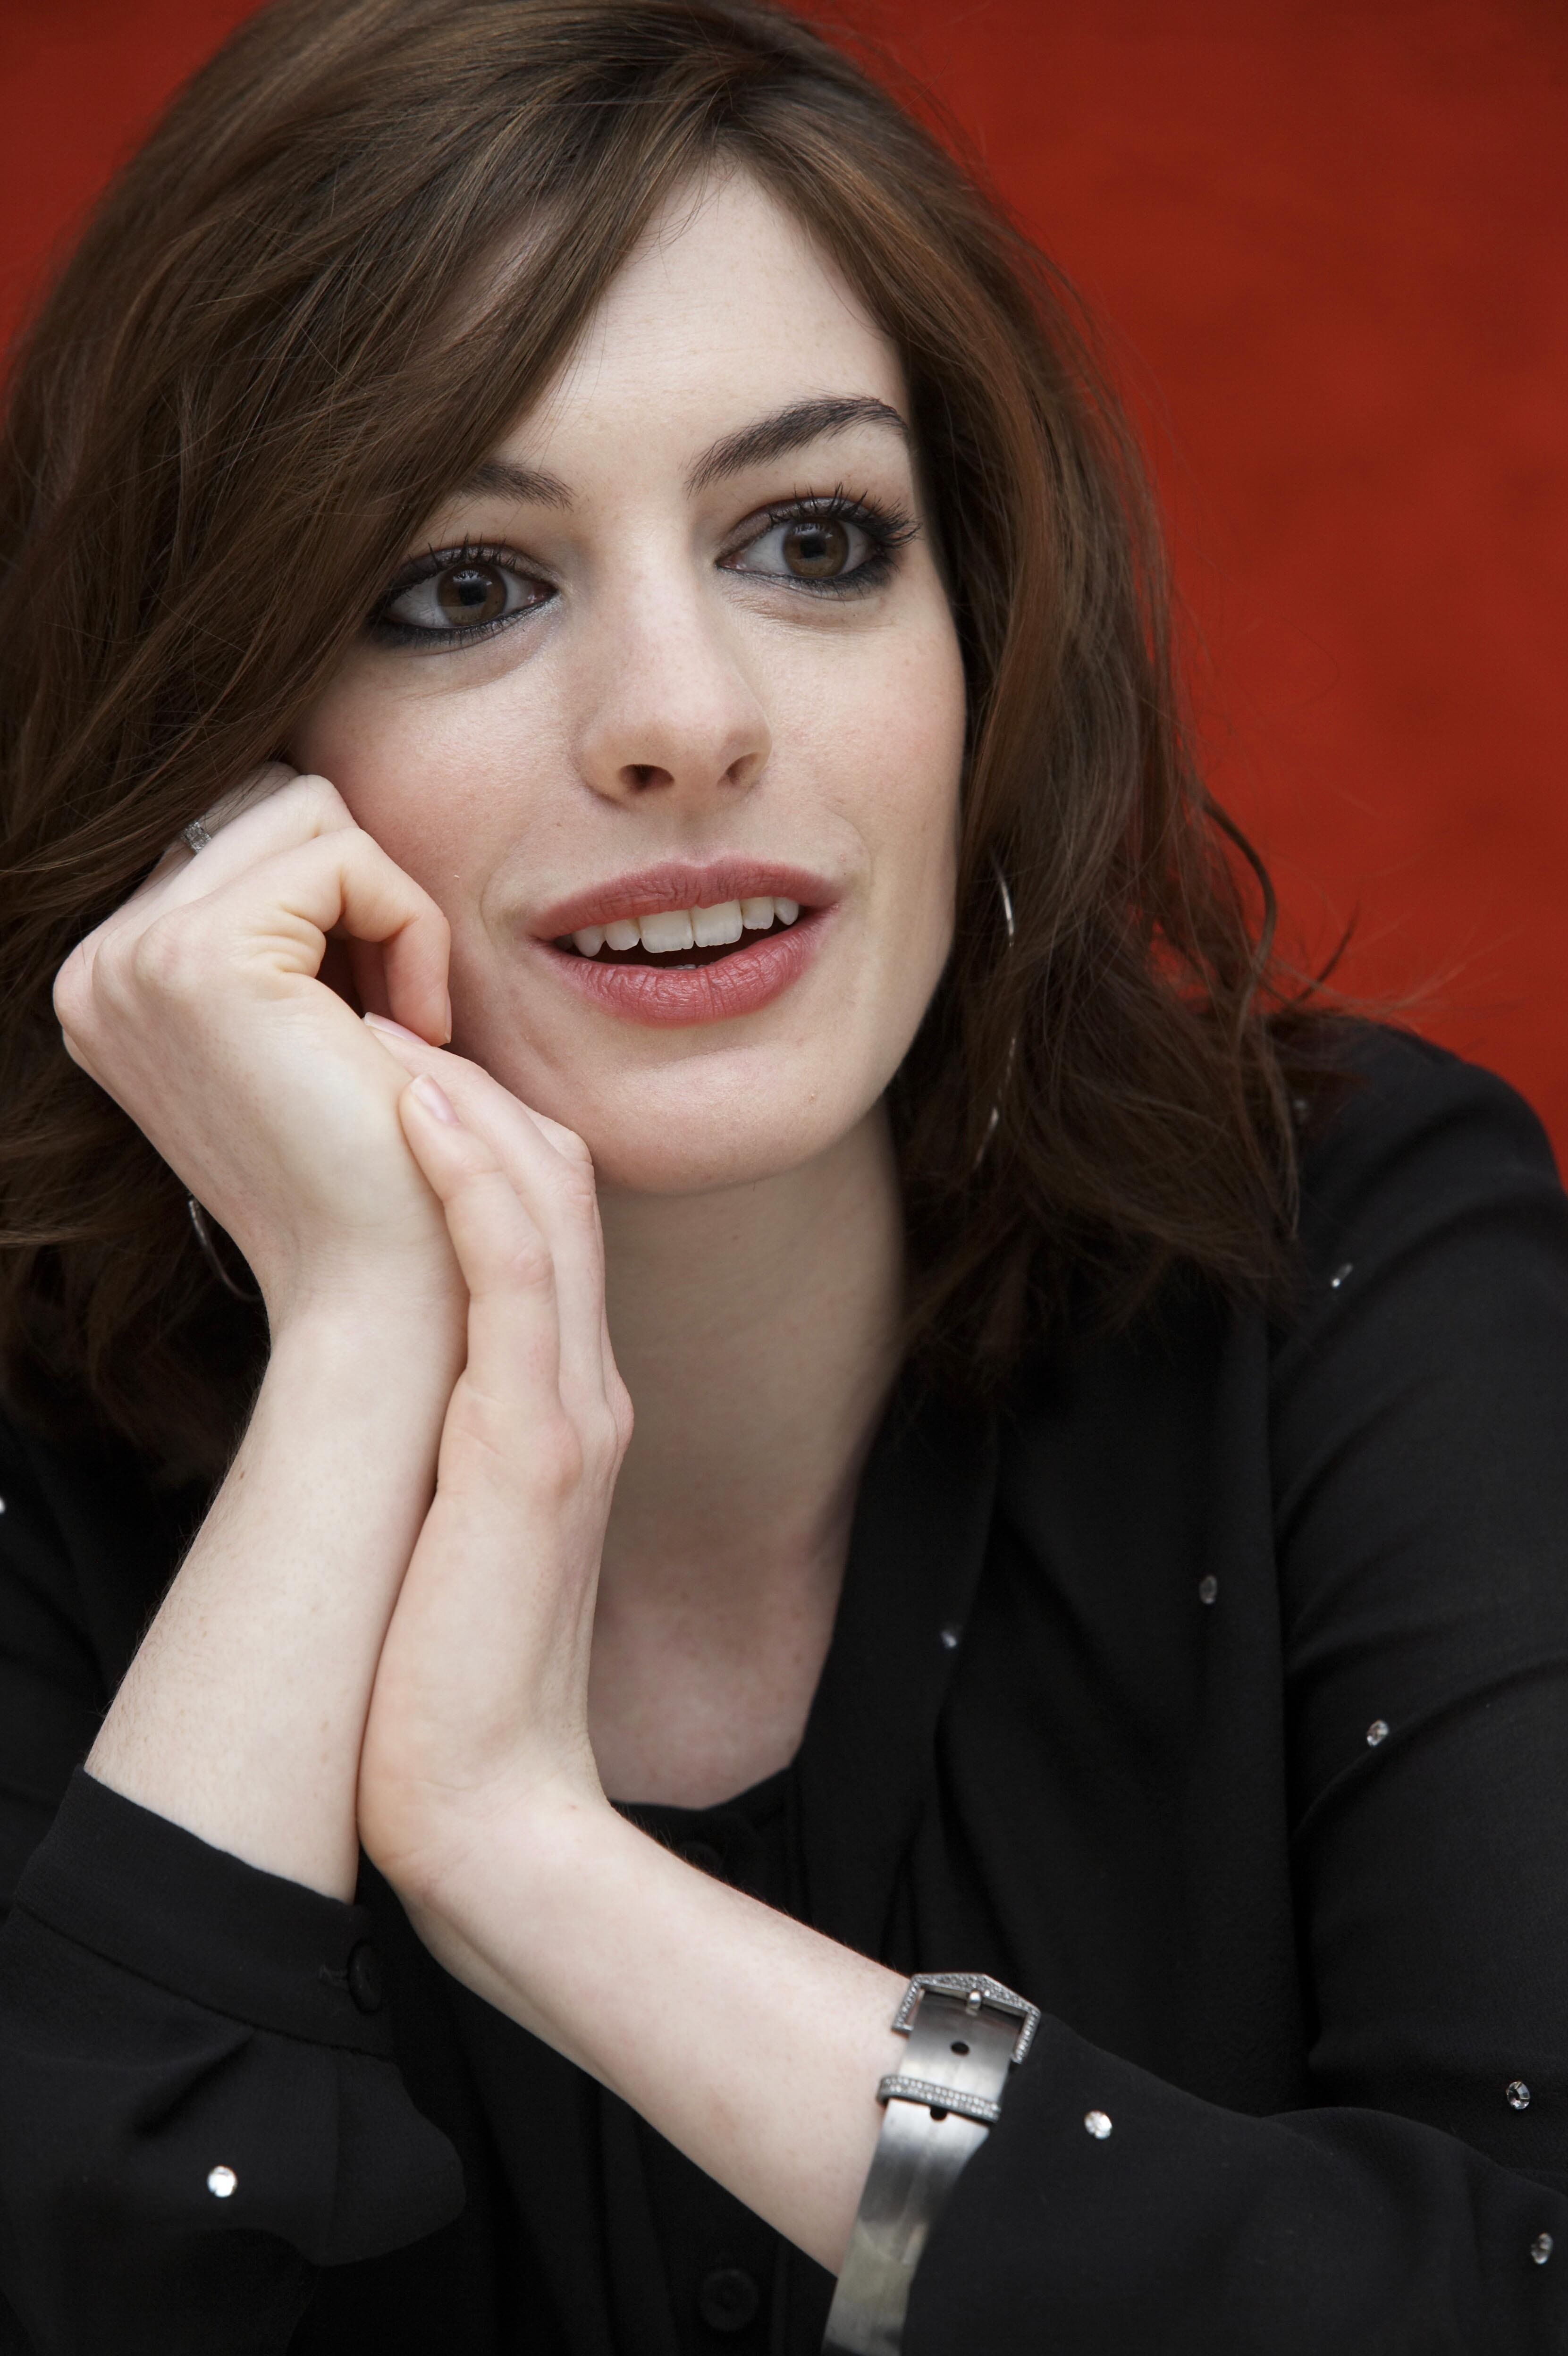 53805_Anne_Hathaway_-_Theo_Kingma_portraits_for_Get_Smart_122_768lo.jpg